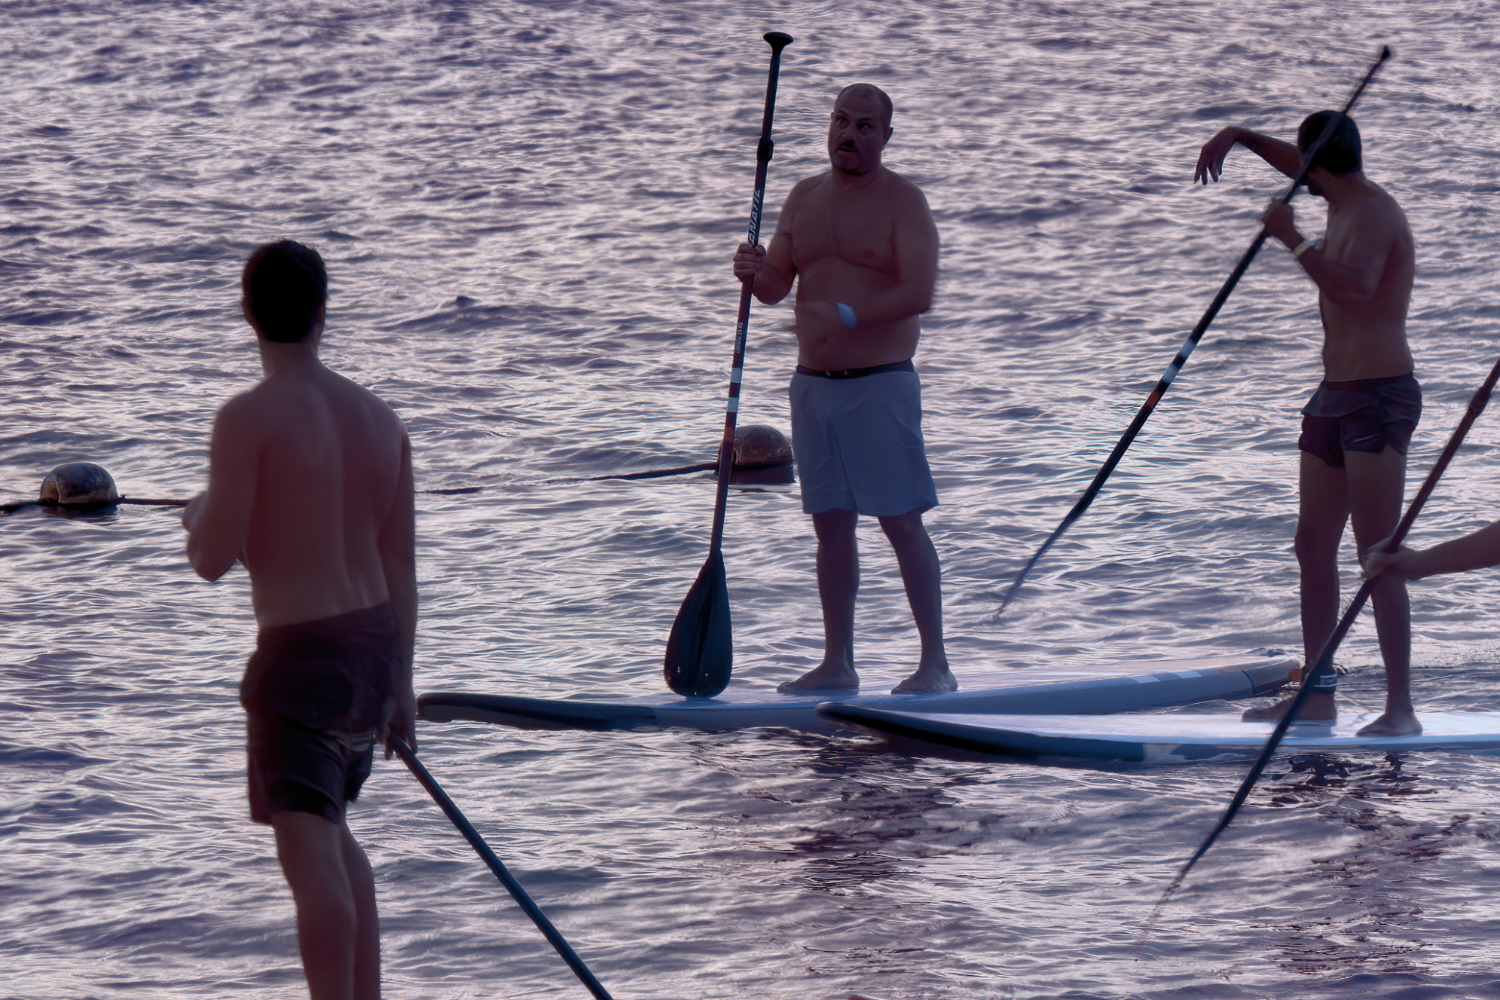 group of big guys on paddle boards